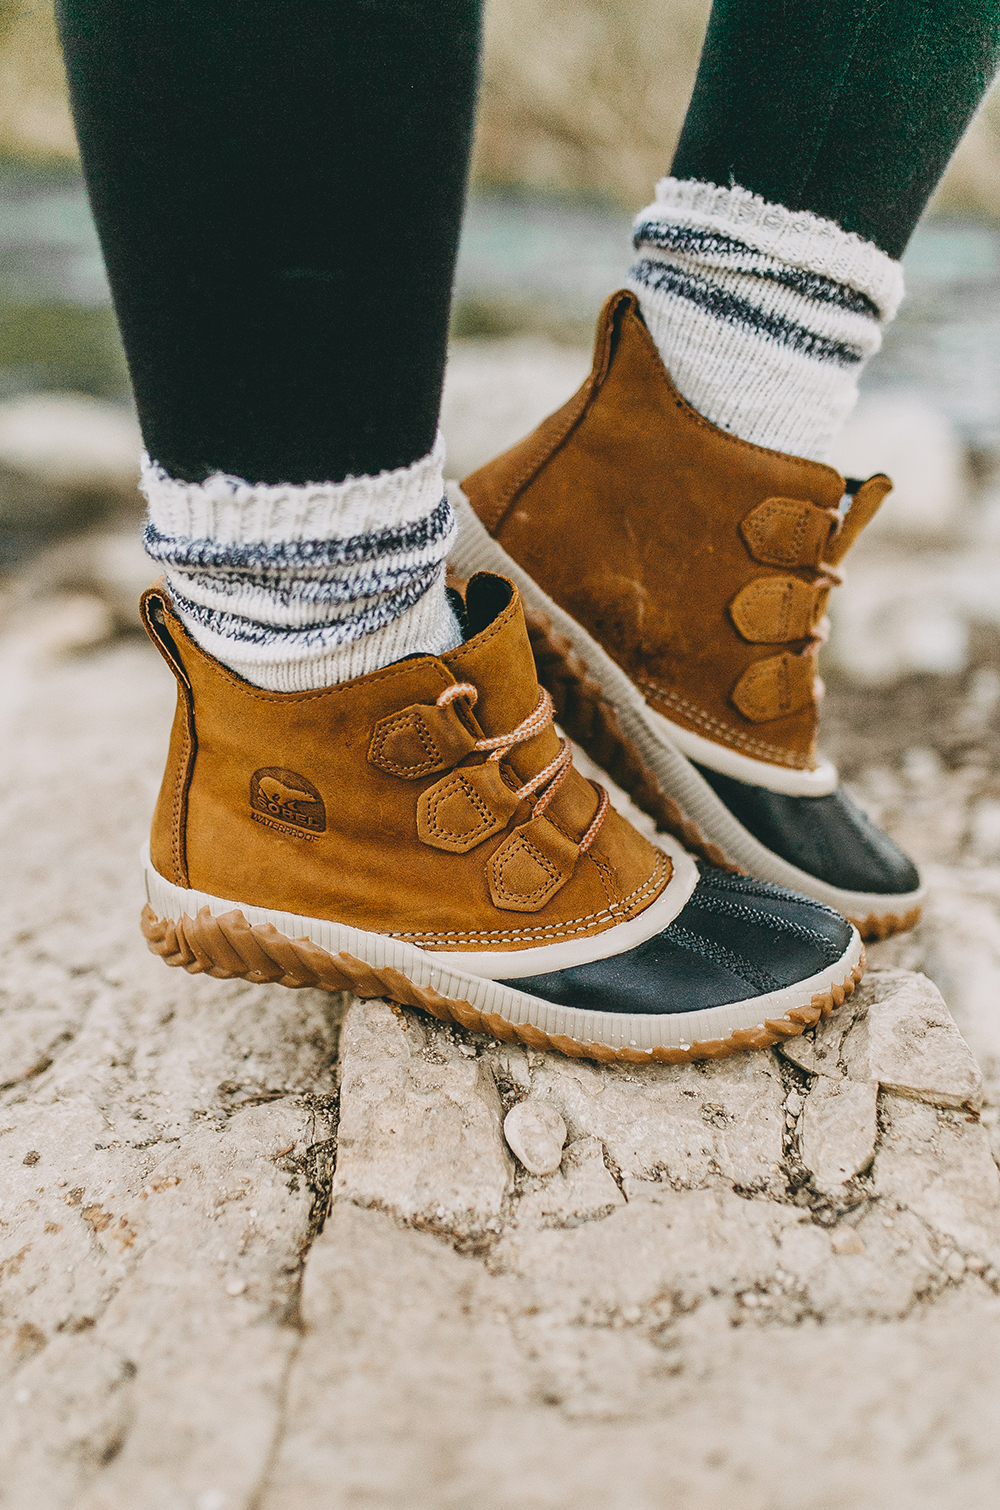 livvyland-blog-olivia-watson-austin-texas-fashion-lifestyle-blogger-backcountry-patagonia-better-sweater-jacket-sorel-hiking-boots-sorel-boots-hiking-outfit-1